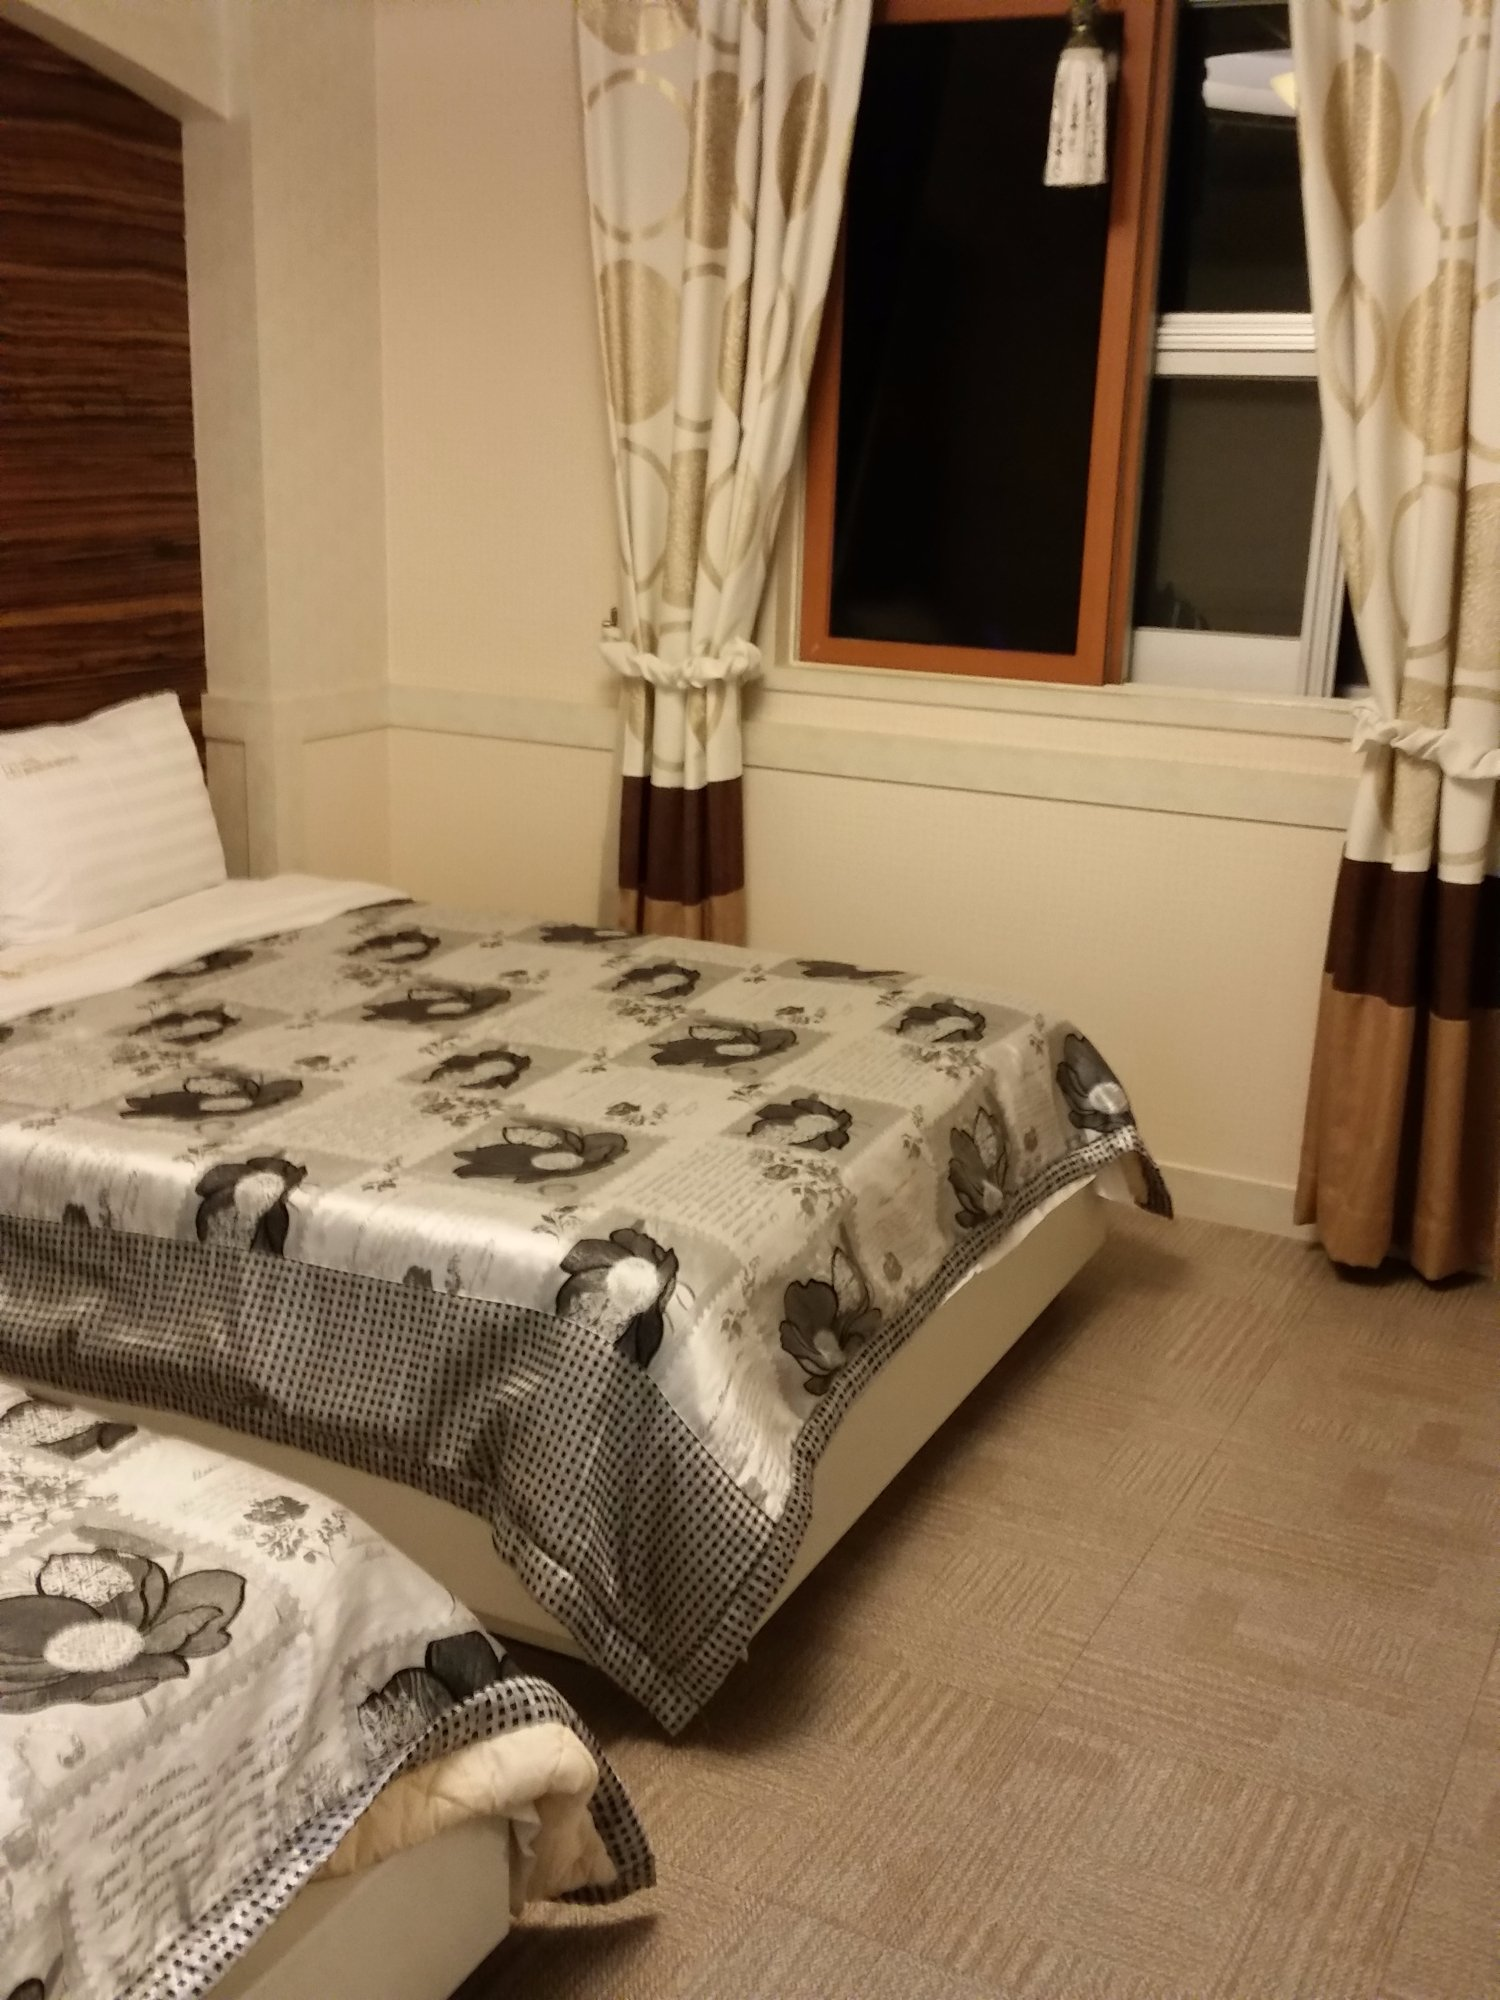 Hotel June Incheon Airport Hotel Queen Incheon Airport Updated 2017 Prices Reviews South